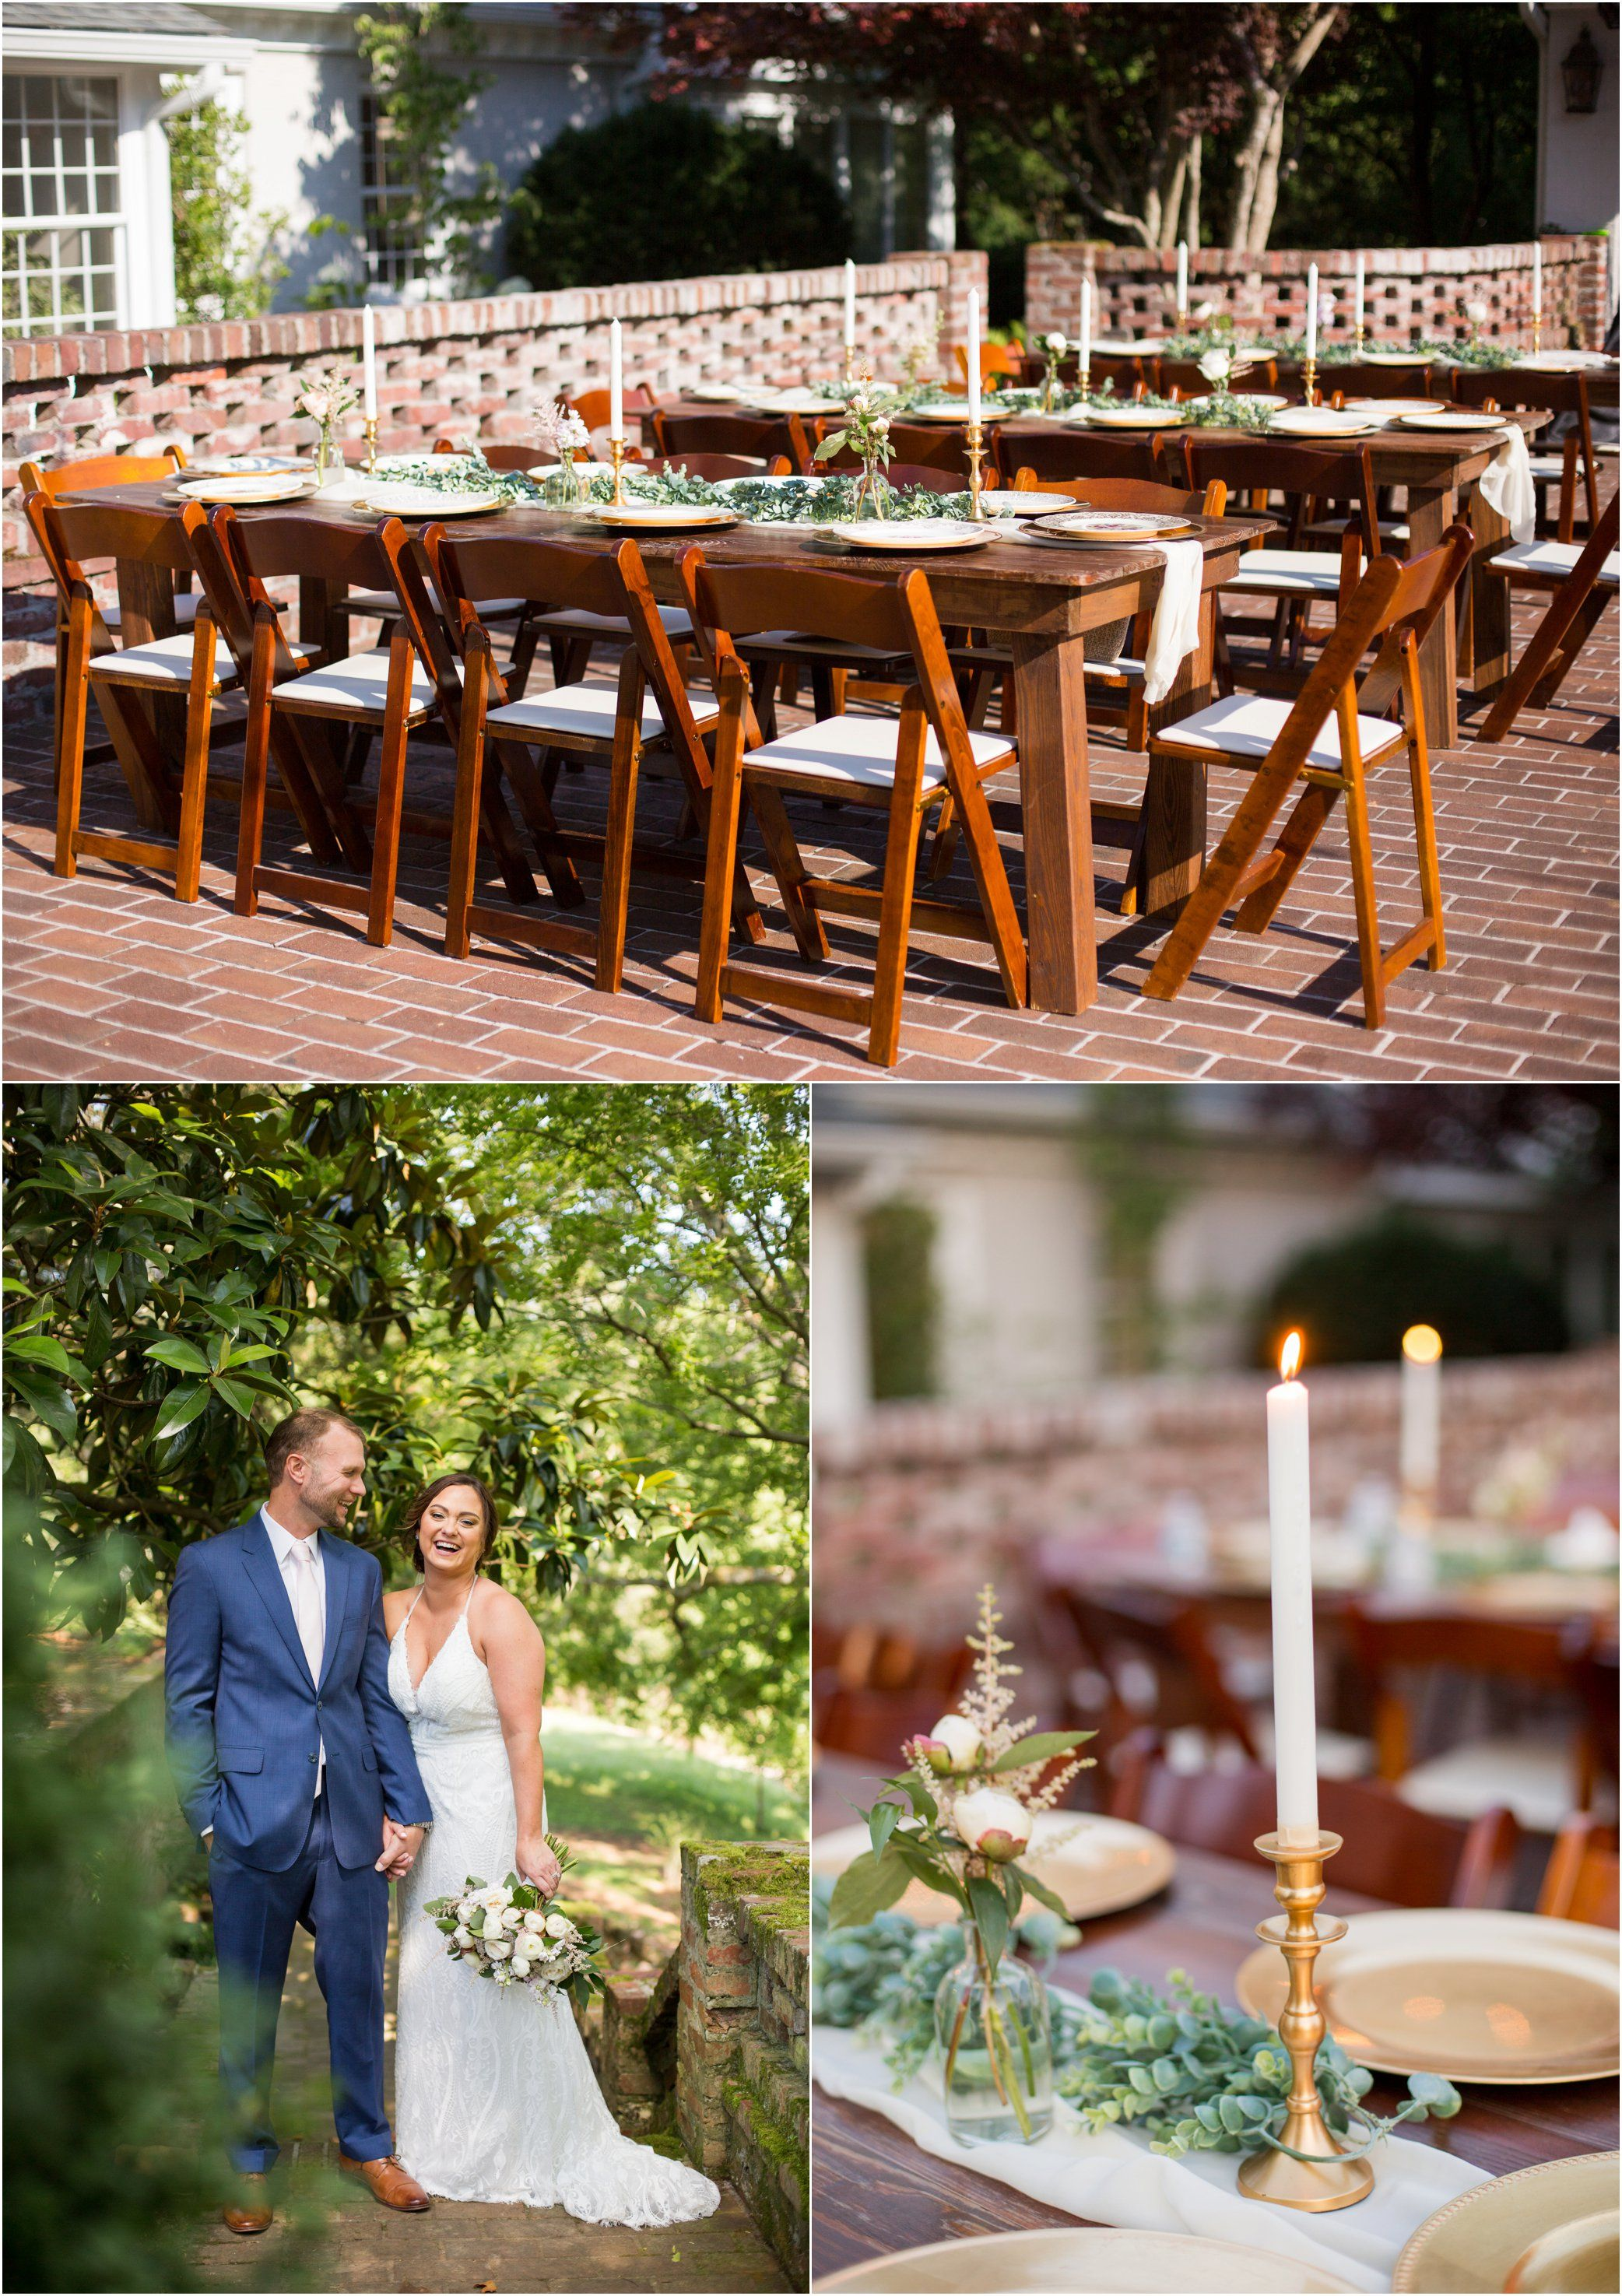 Candlelit Reception On The Brick Patio Estate Wedding Venue Candlelit Reception Maple Grove